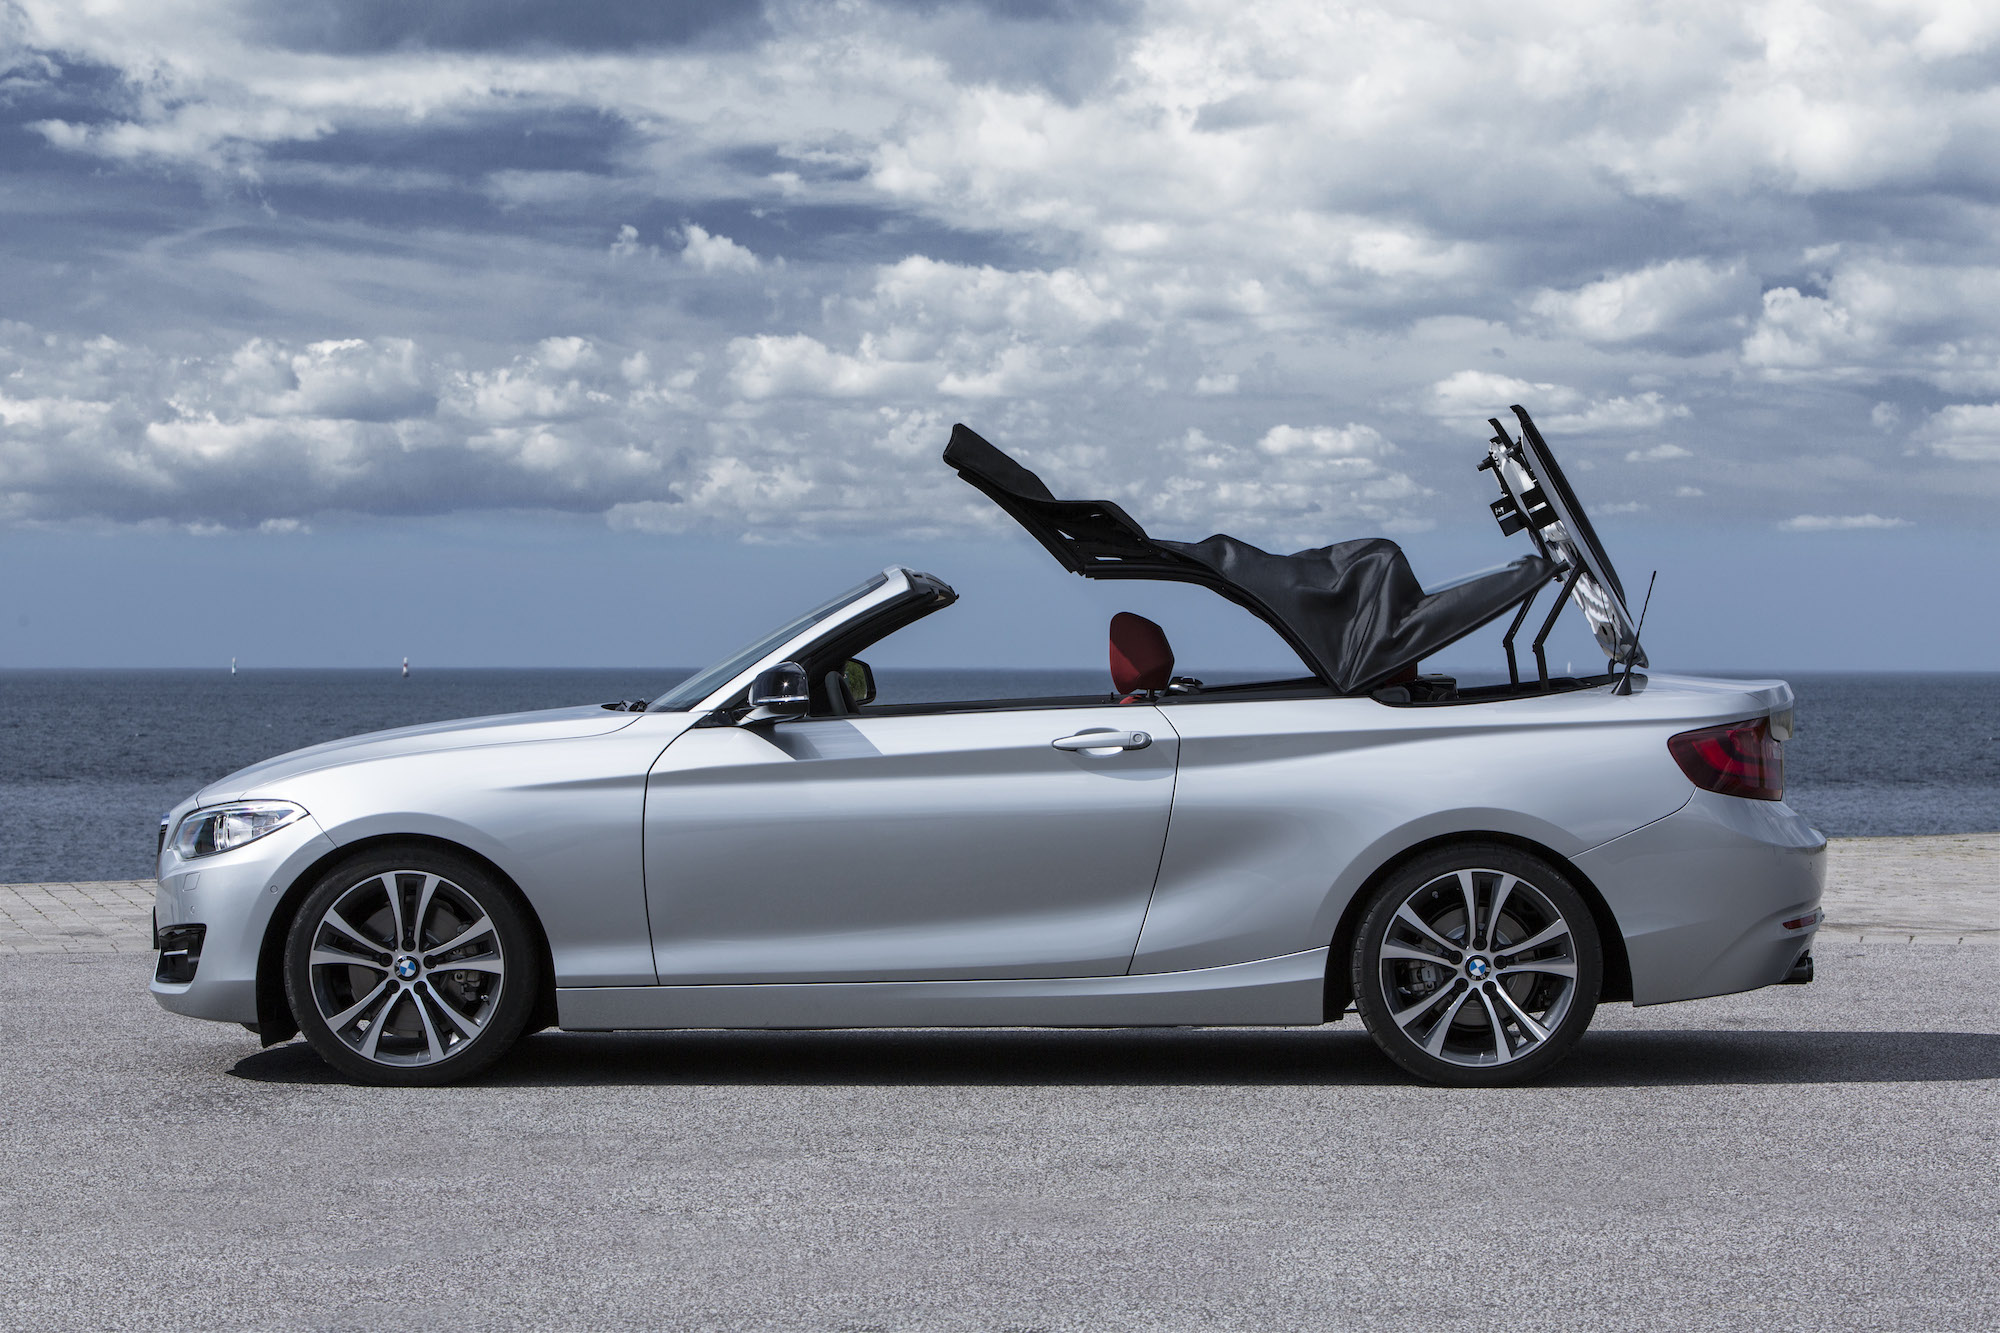 Used Cars For Sale Las Vegas >> Hardtop Convertibles Dwindling: Are They A Passing Fad?